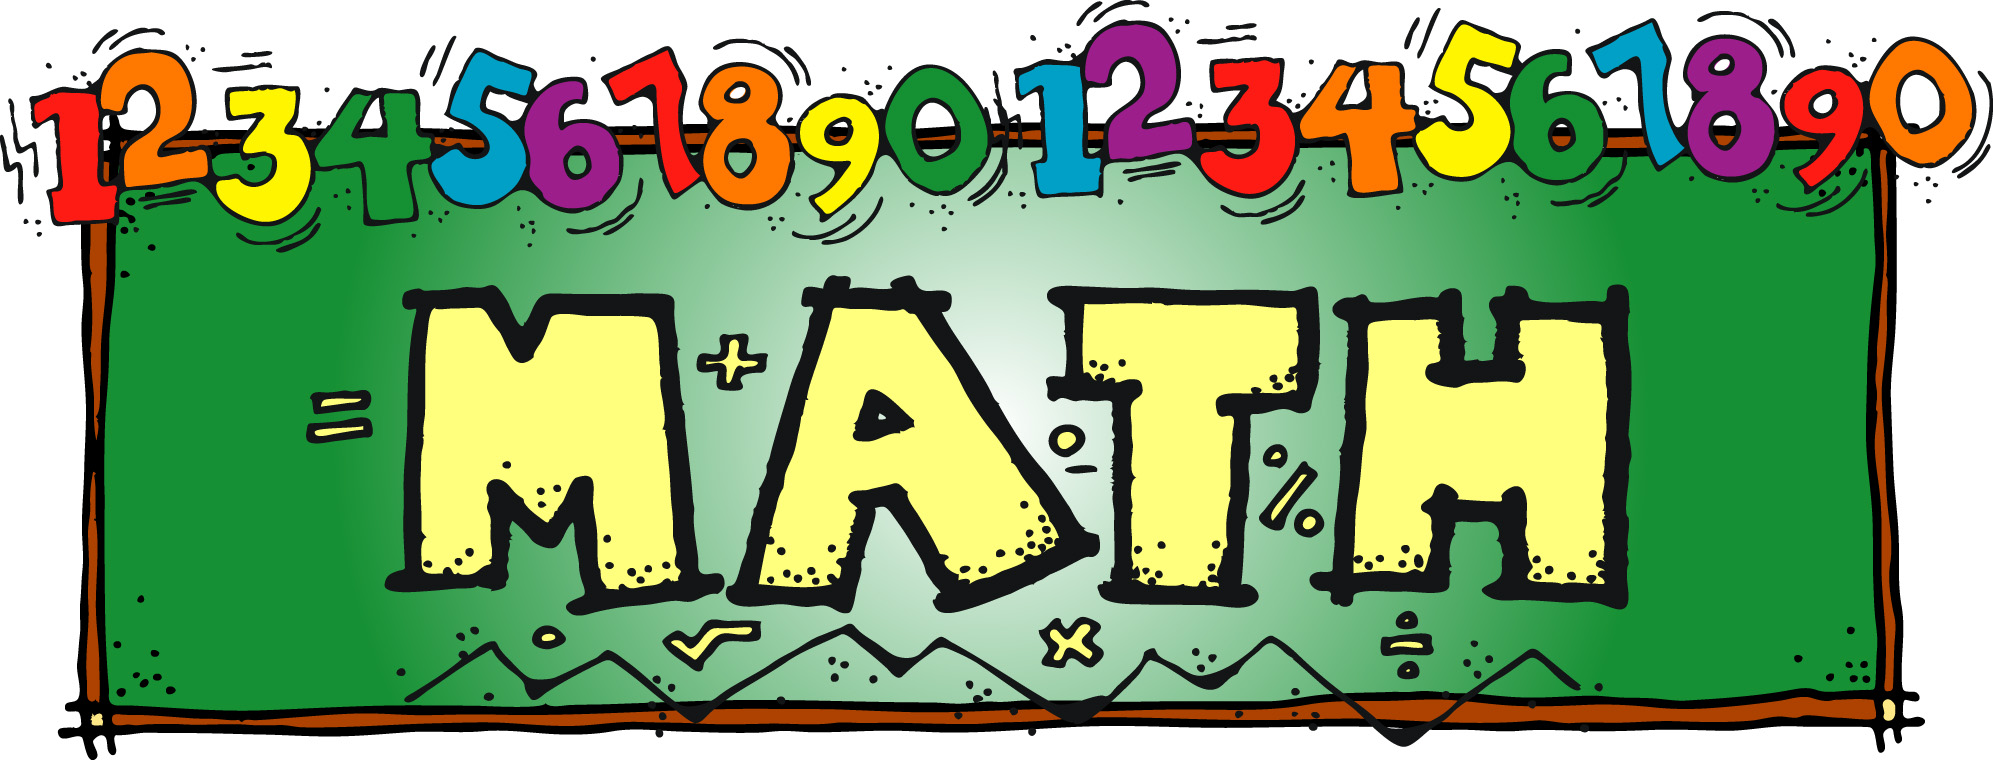 Math clip art black and white free clipart image